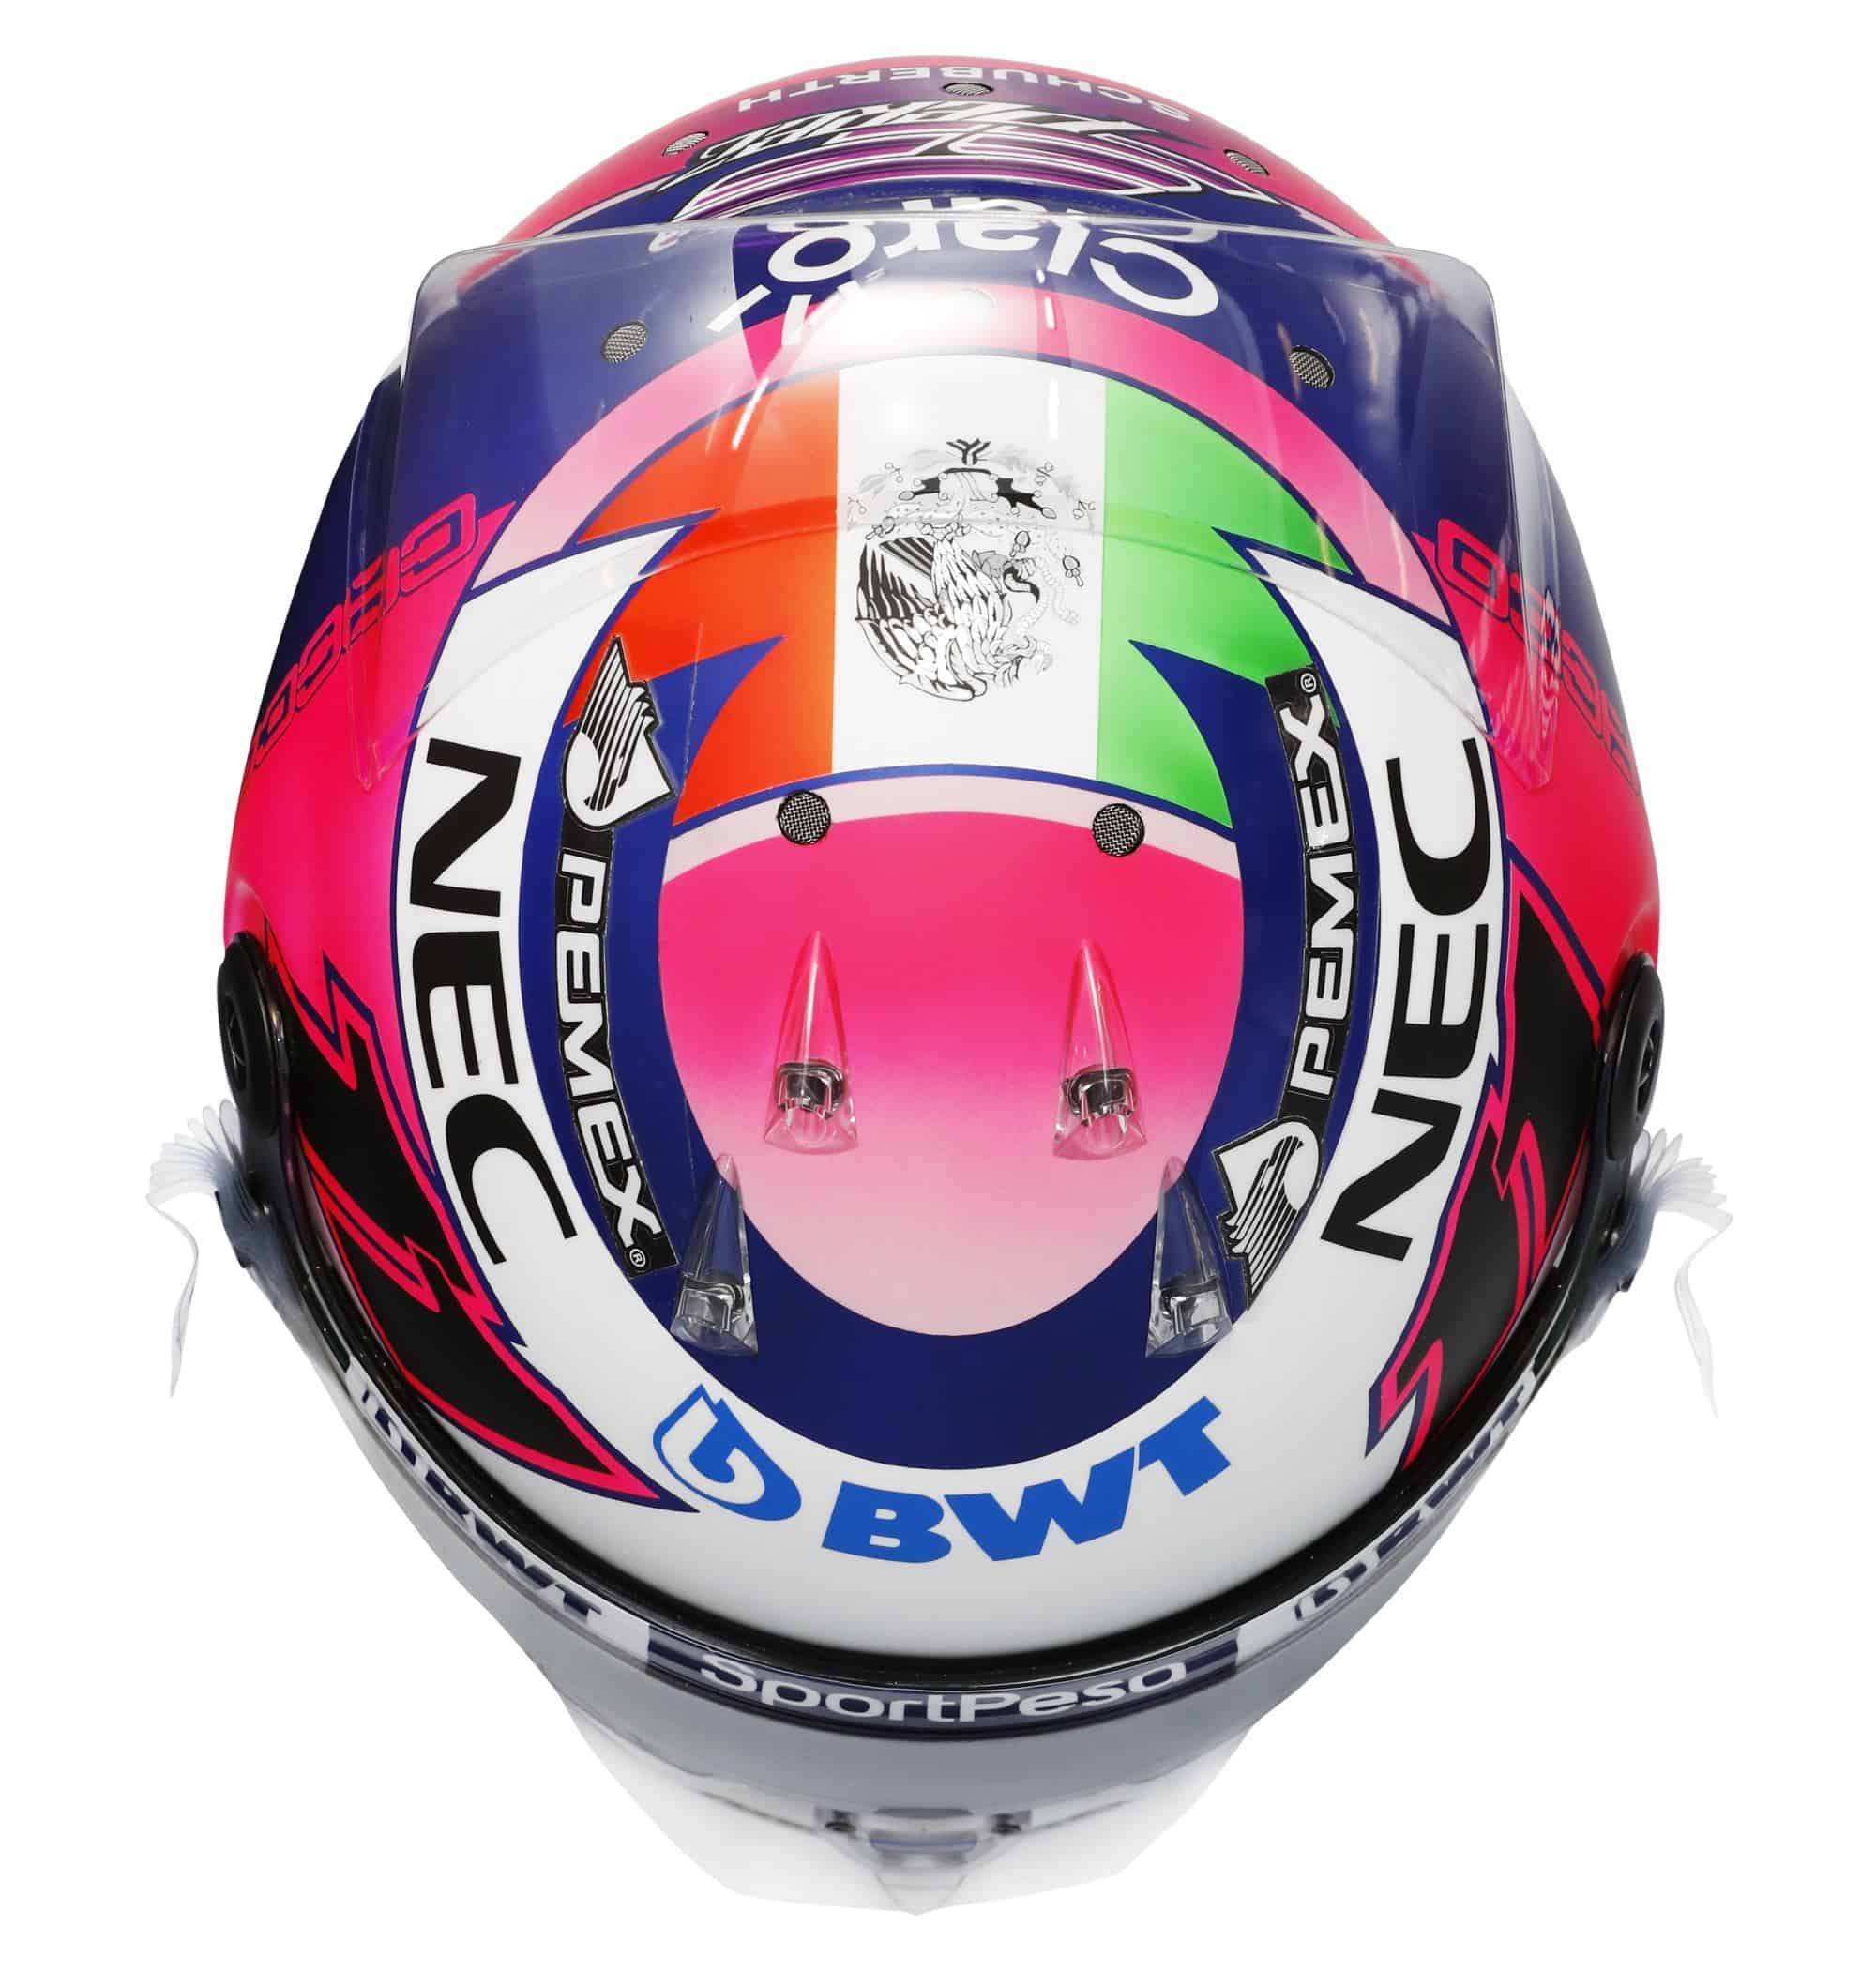 2019 Sport Pesa Racing Point Sergio Perez helmet top Photo Racing Point Edited by MAXF1net